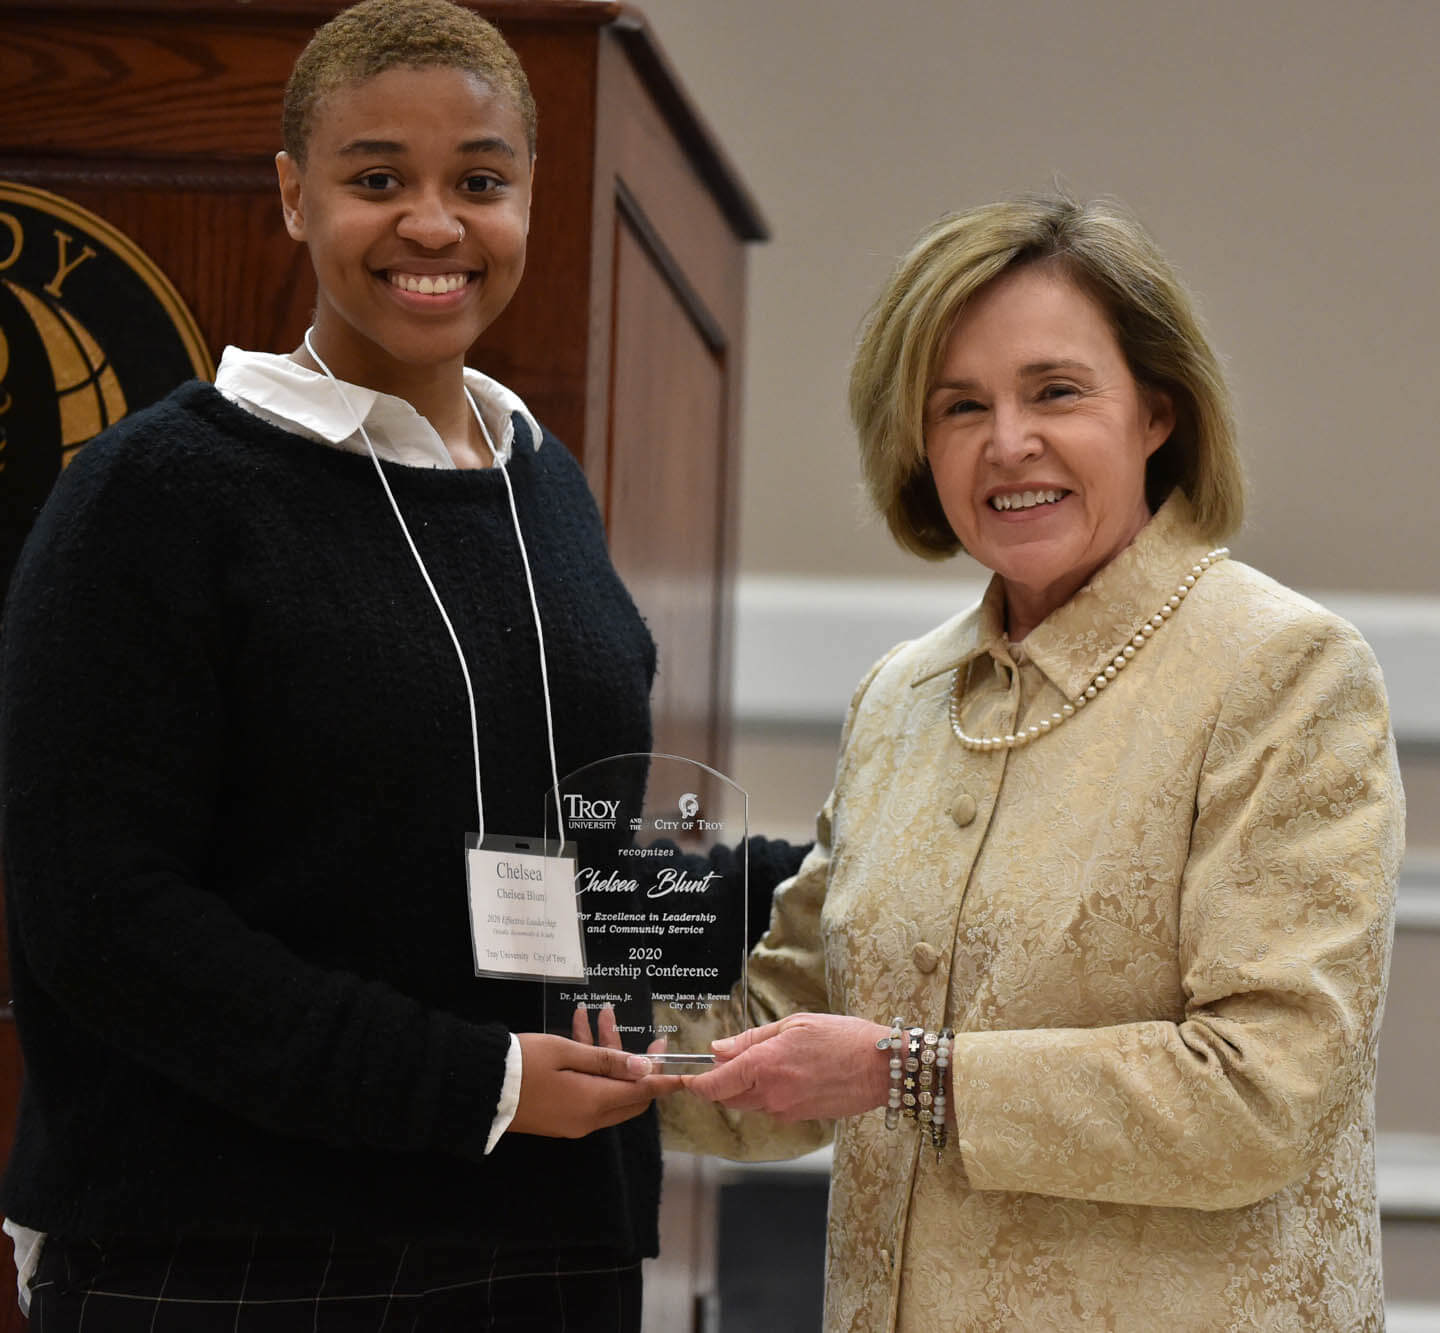 Chelsea Blunt receiving student award from Barbara Patterson